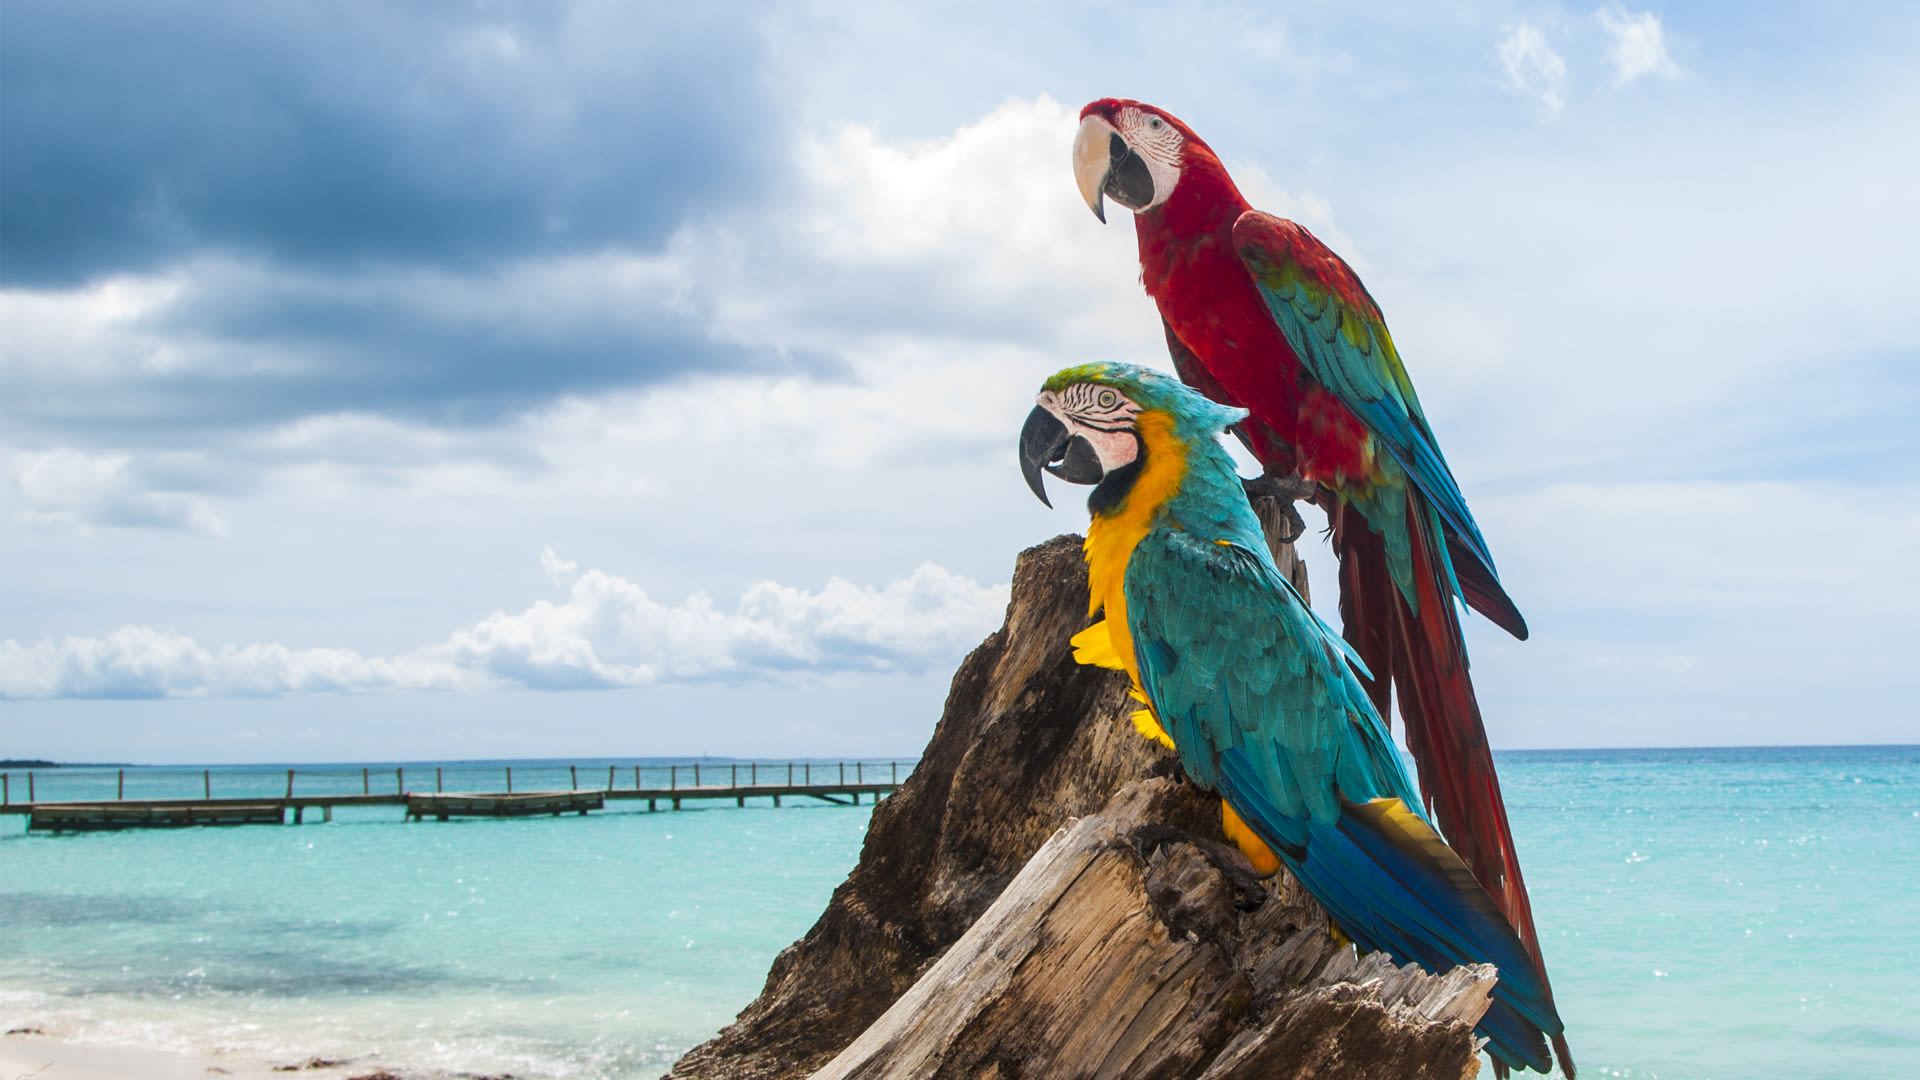 Two parrots on a beach